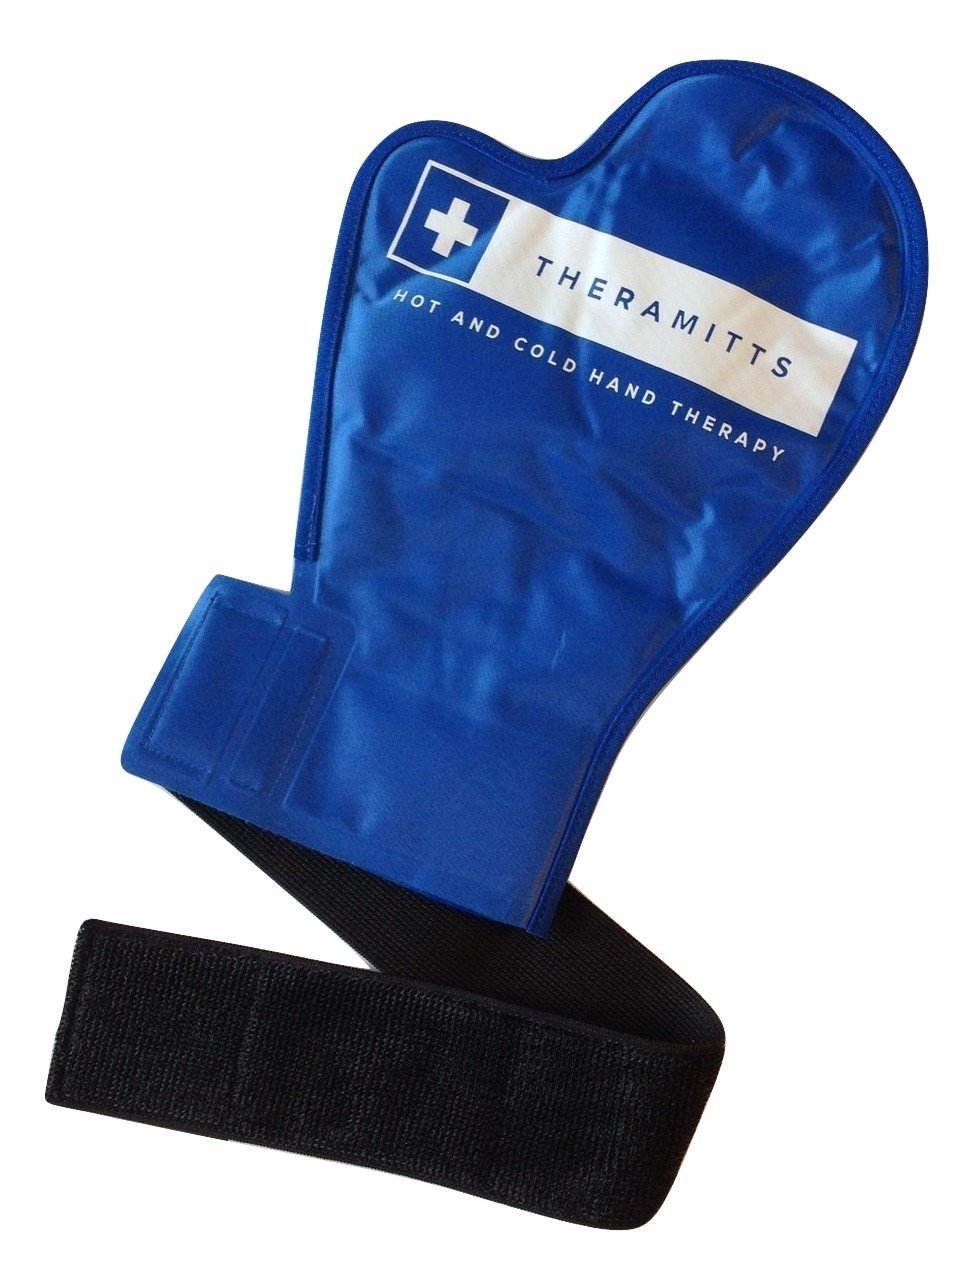 Hot and Cold Therapy Gel Gloves (Single) - Ice and Heat Therapy Mittens for Arthritis, Finger and Hand Injuries, and Carpal Tunnel